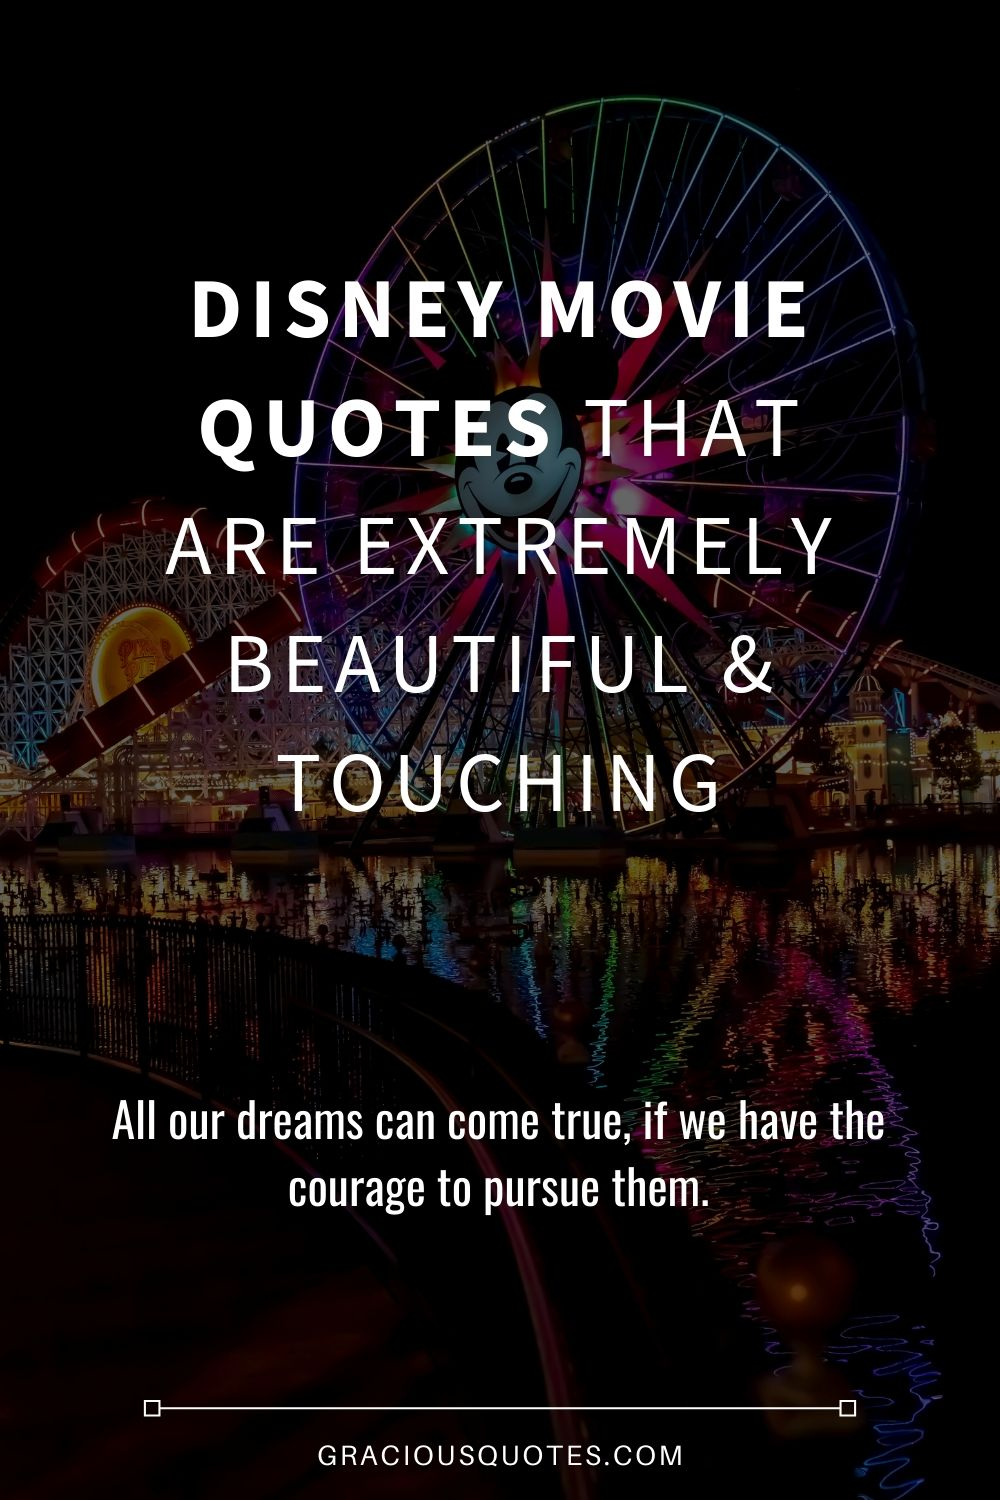 Disney-Movie-Quotes-that-Are-Extremely-Beautiful-Touching-Gracious-Quotes